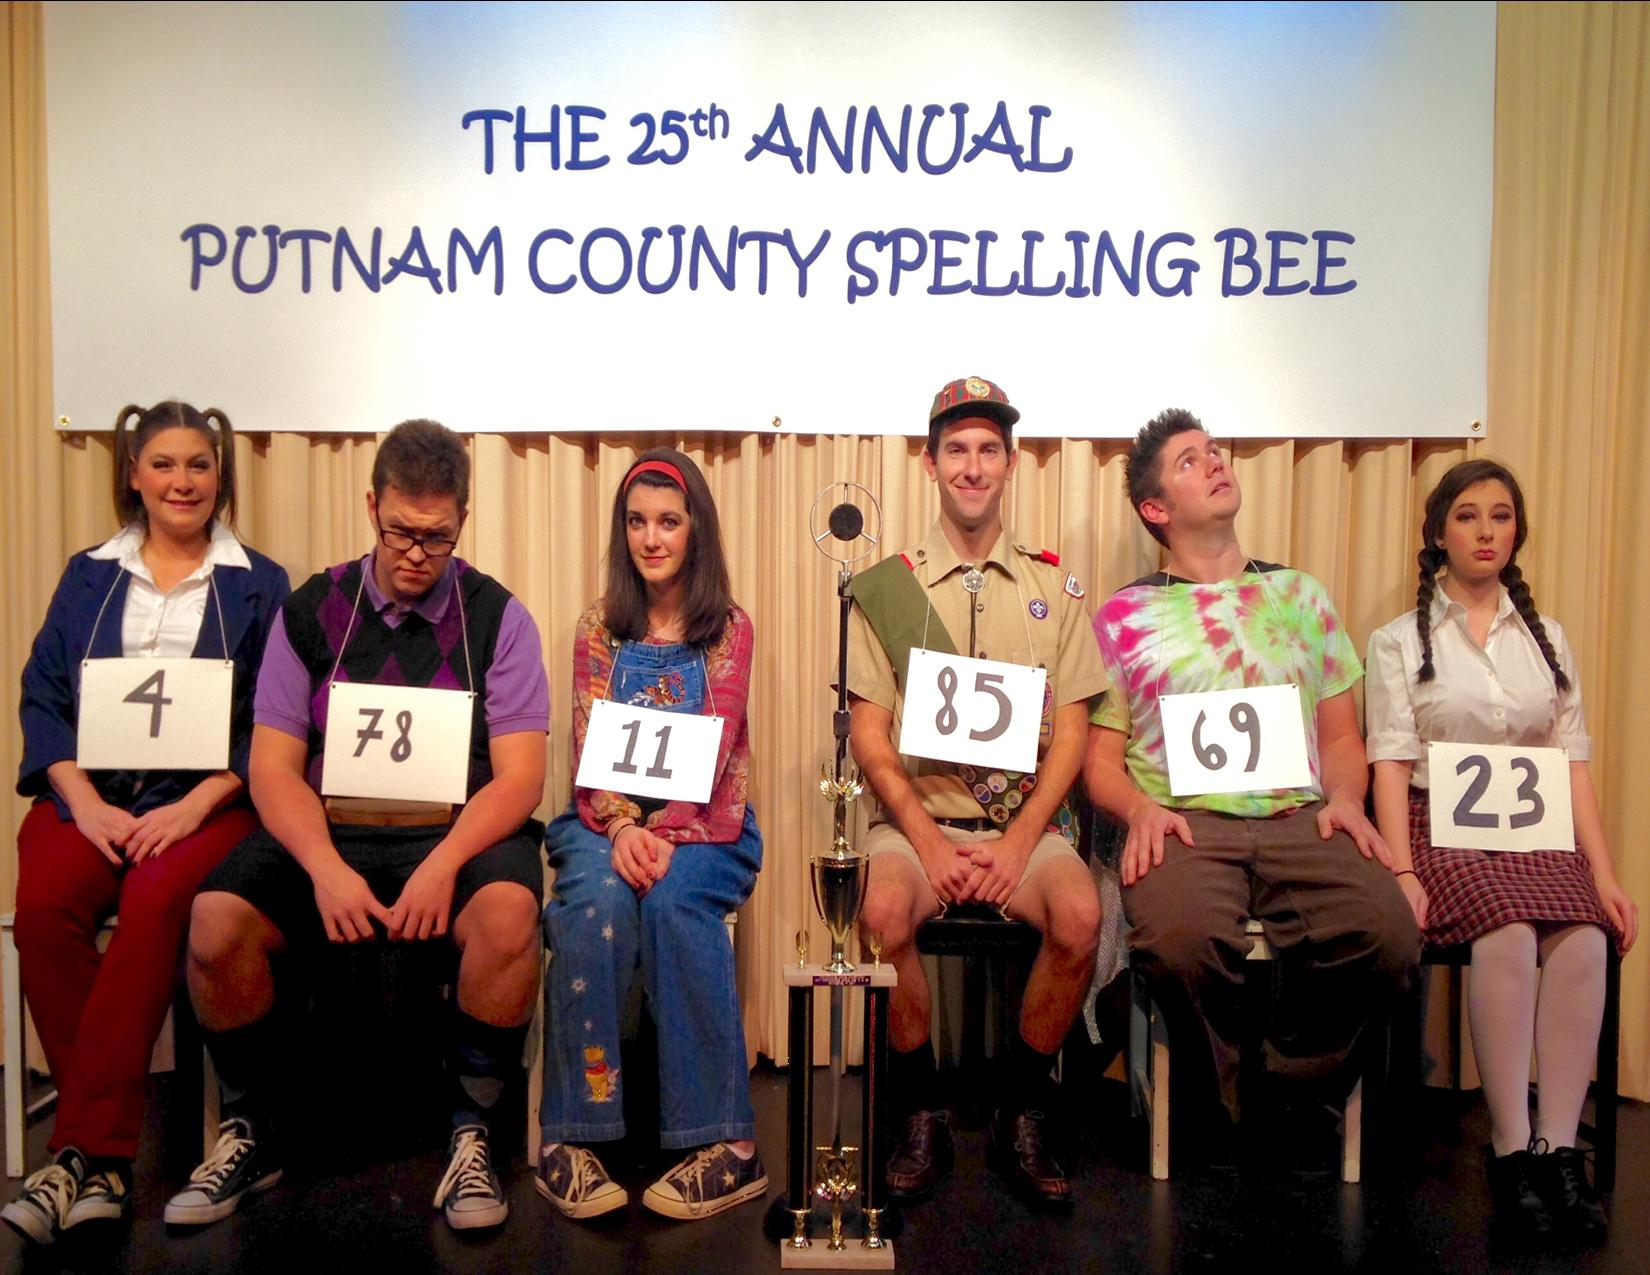 the 25th annual spelling bee A riotous ride, complete with audience participation, the 25th annual putnam county spelling bee is a delightful den of comedic genius the small cast and unit set make this a perfect option for high schools or community theatres the 25th annual putnam county spelling bee is a fast-paced crowd pleaser and an instant theatre patron favorite.